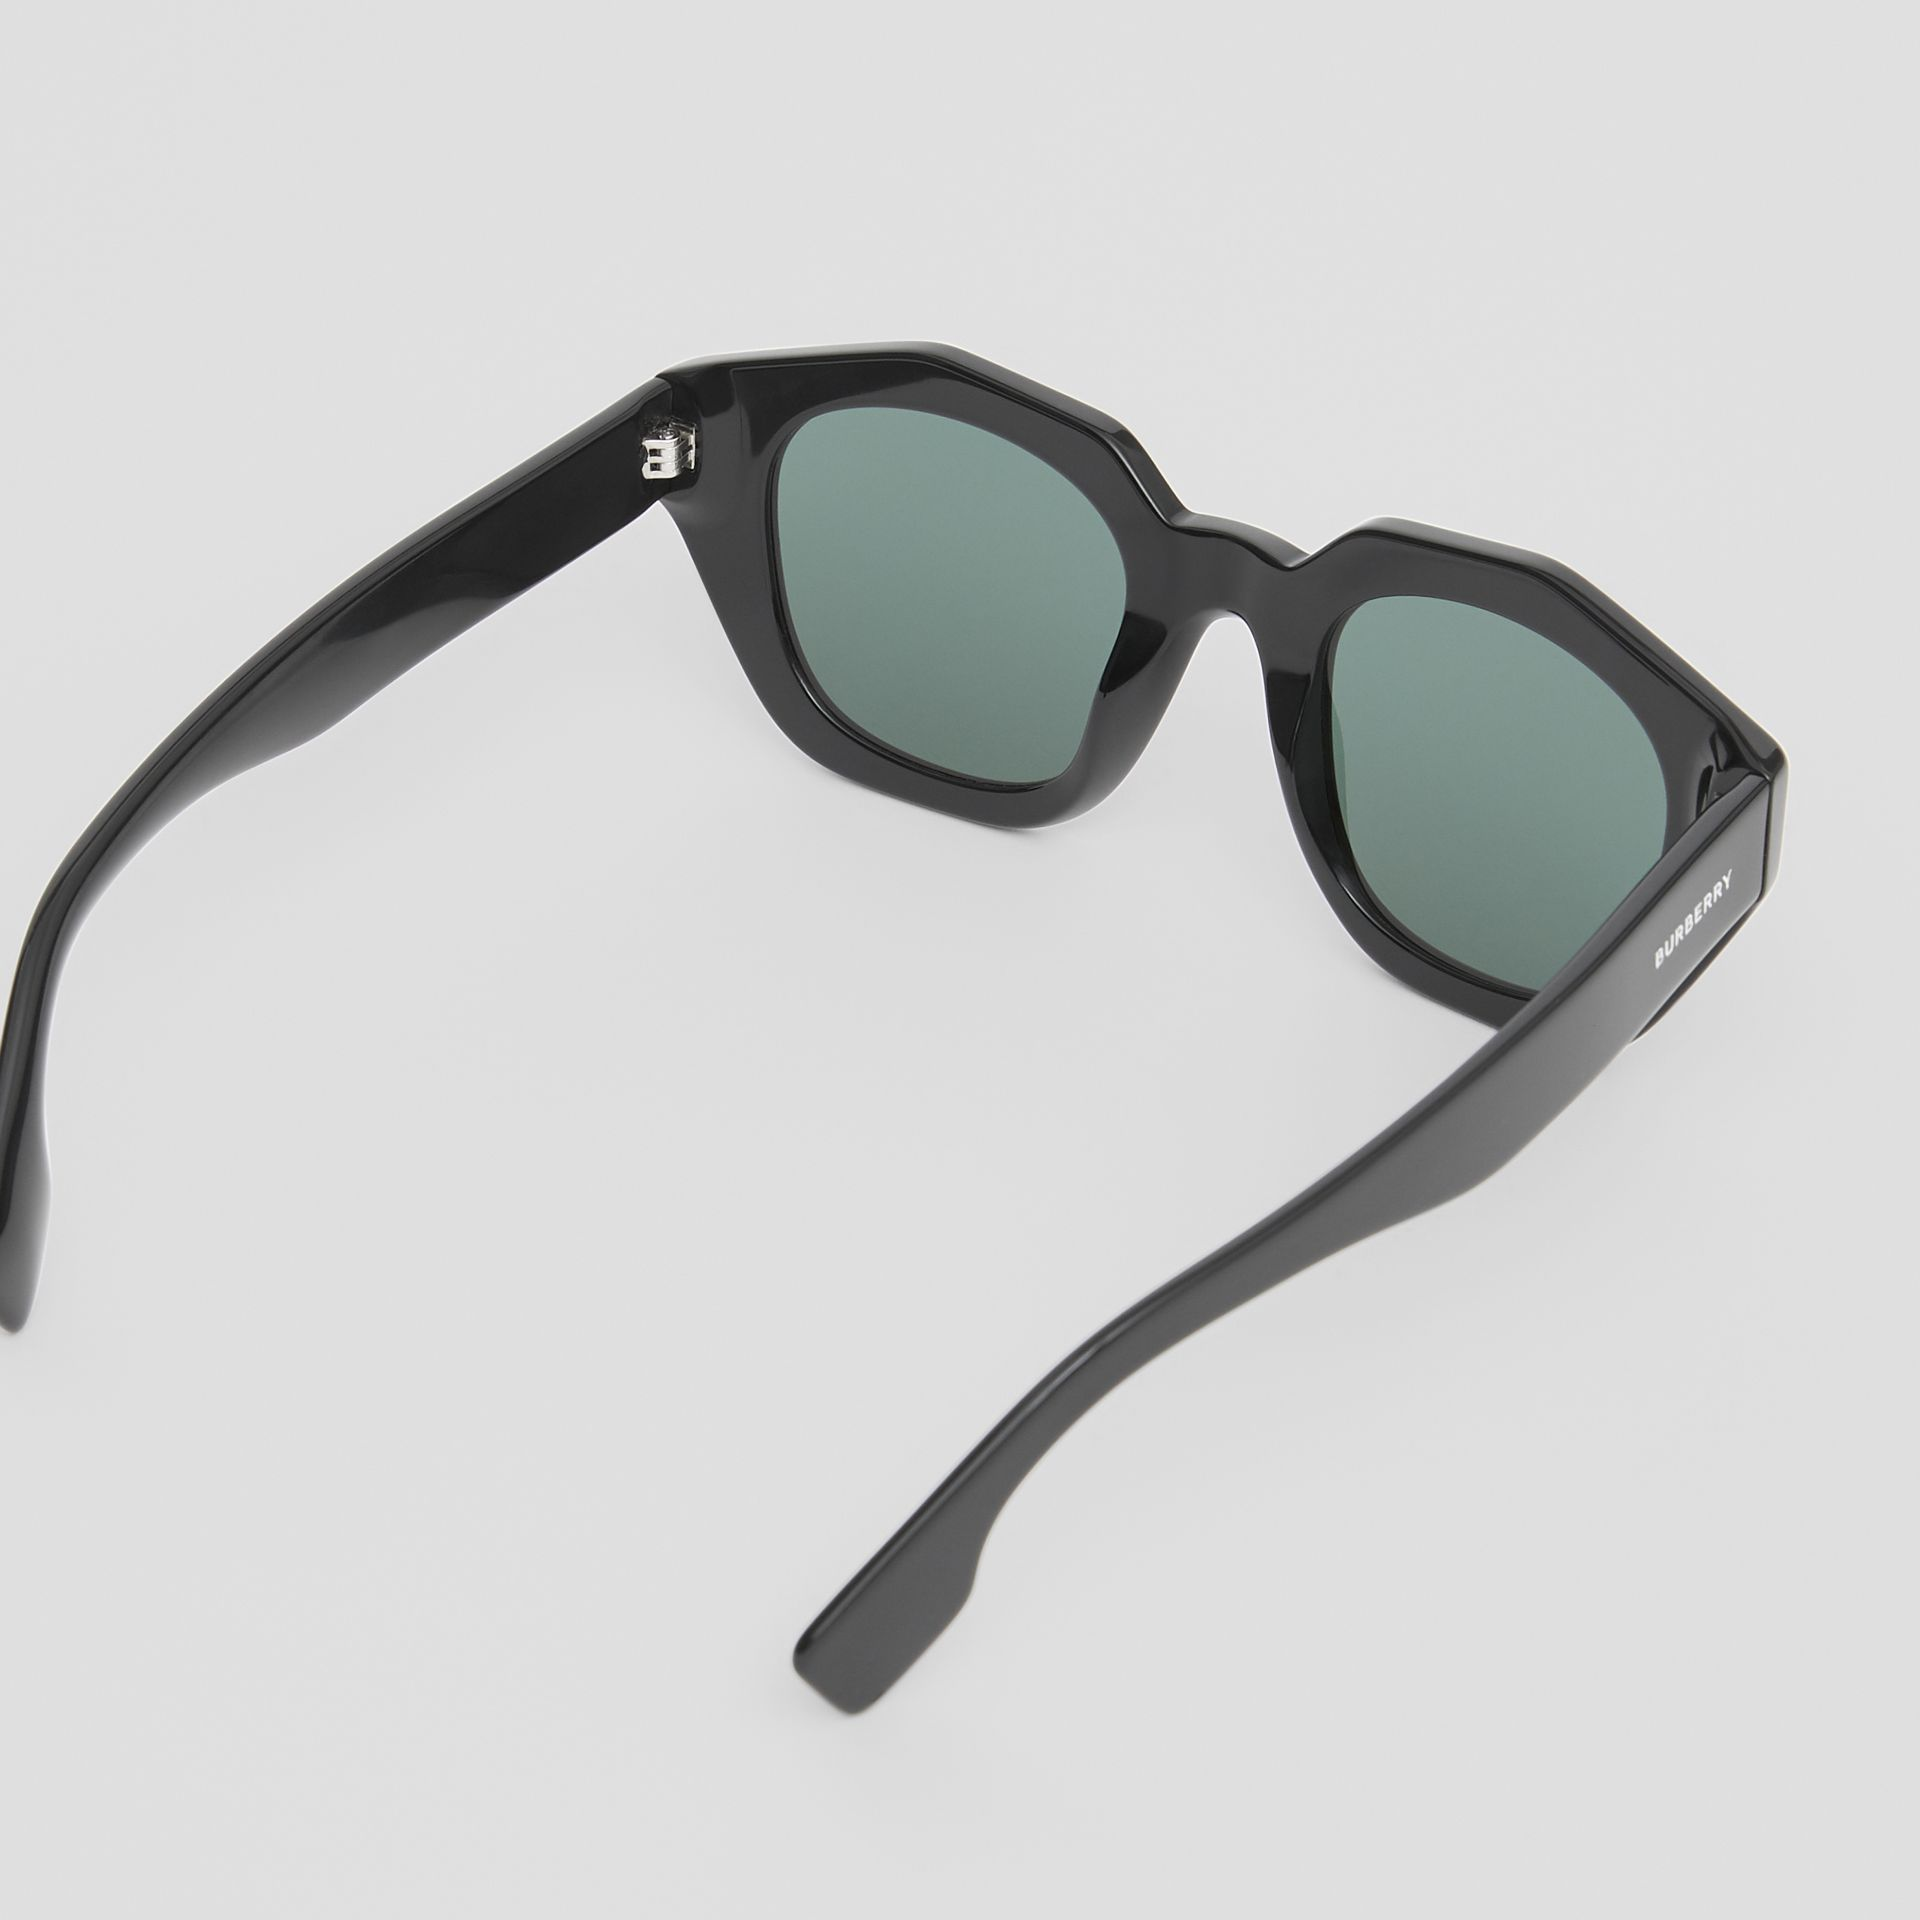 Geometric Frame Sunglasses in Black - Women | Burberry Singapore - gallery image 3